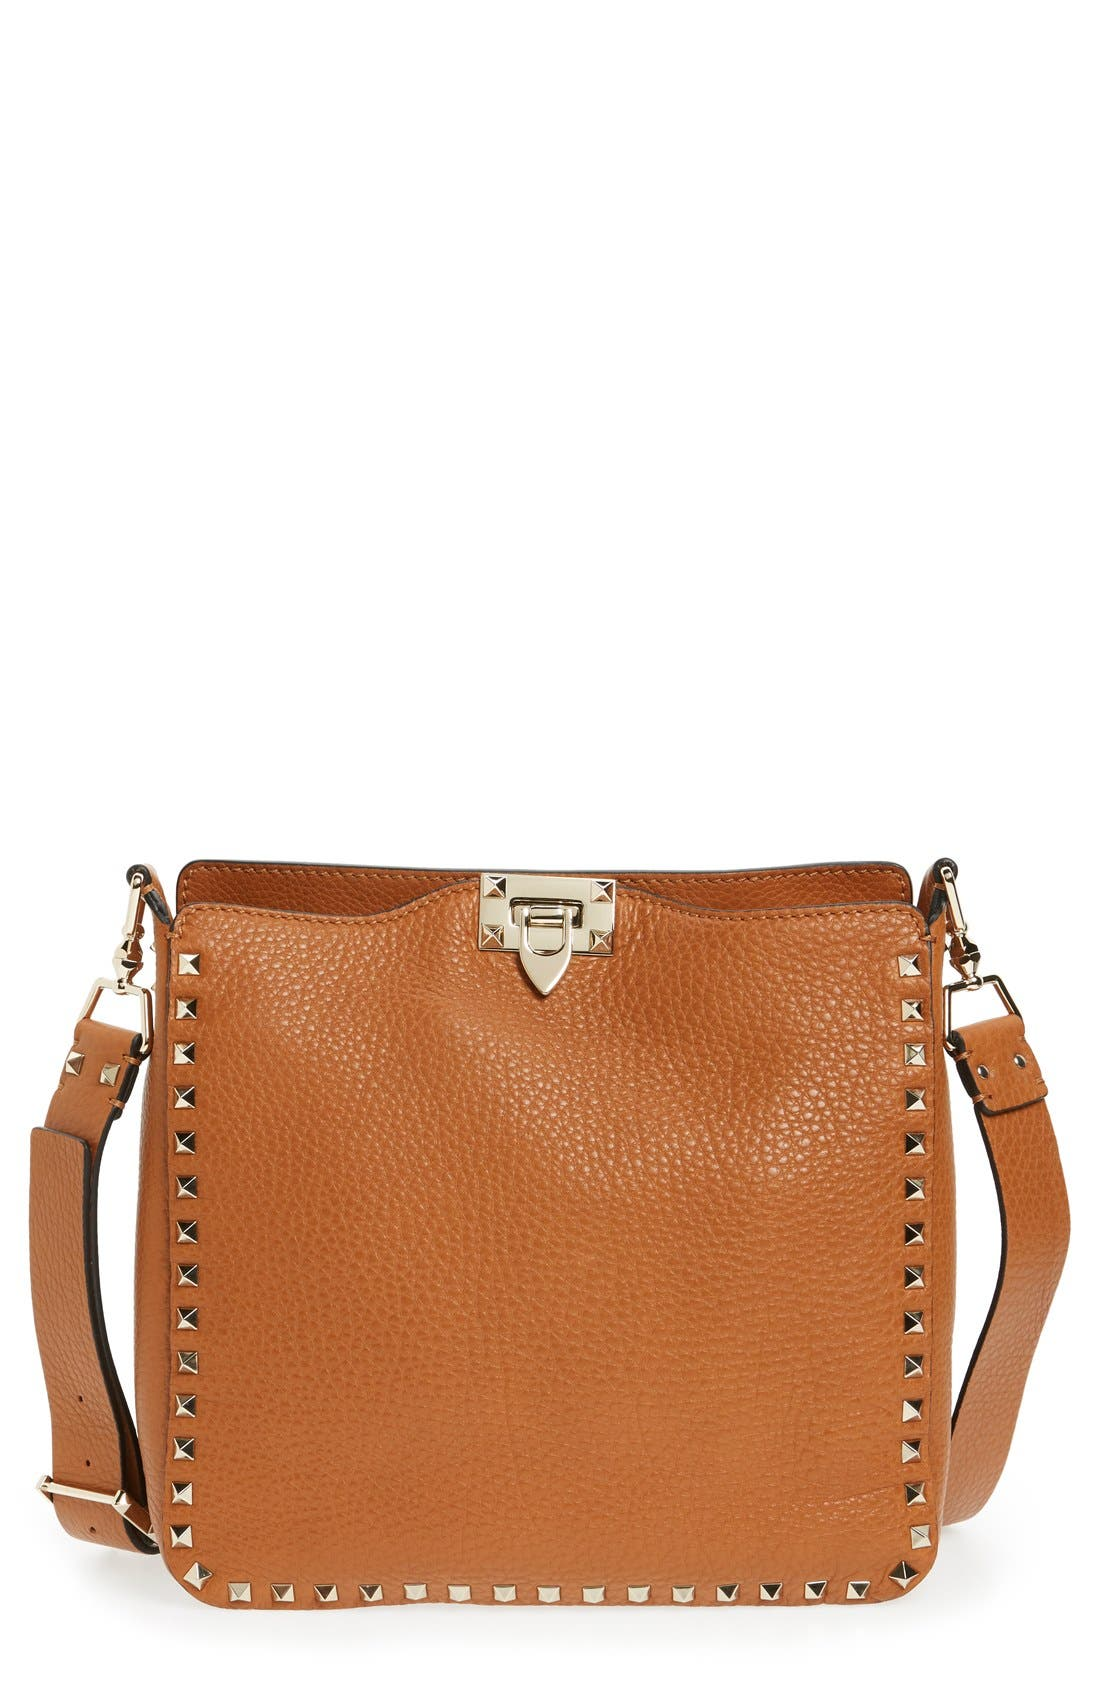 Alternate Image 1 Selected - VALENTINO GARAVANI 'Vitello' Rockstud Hobo